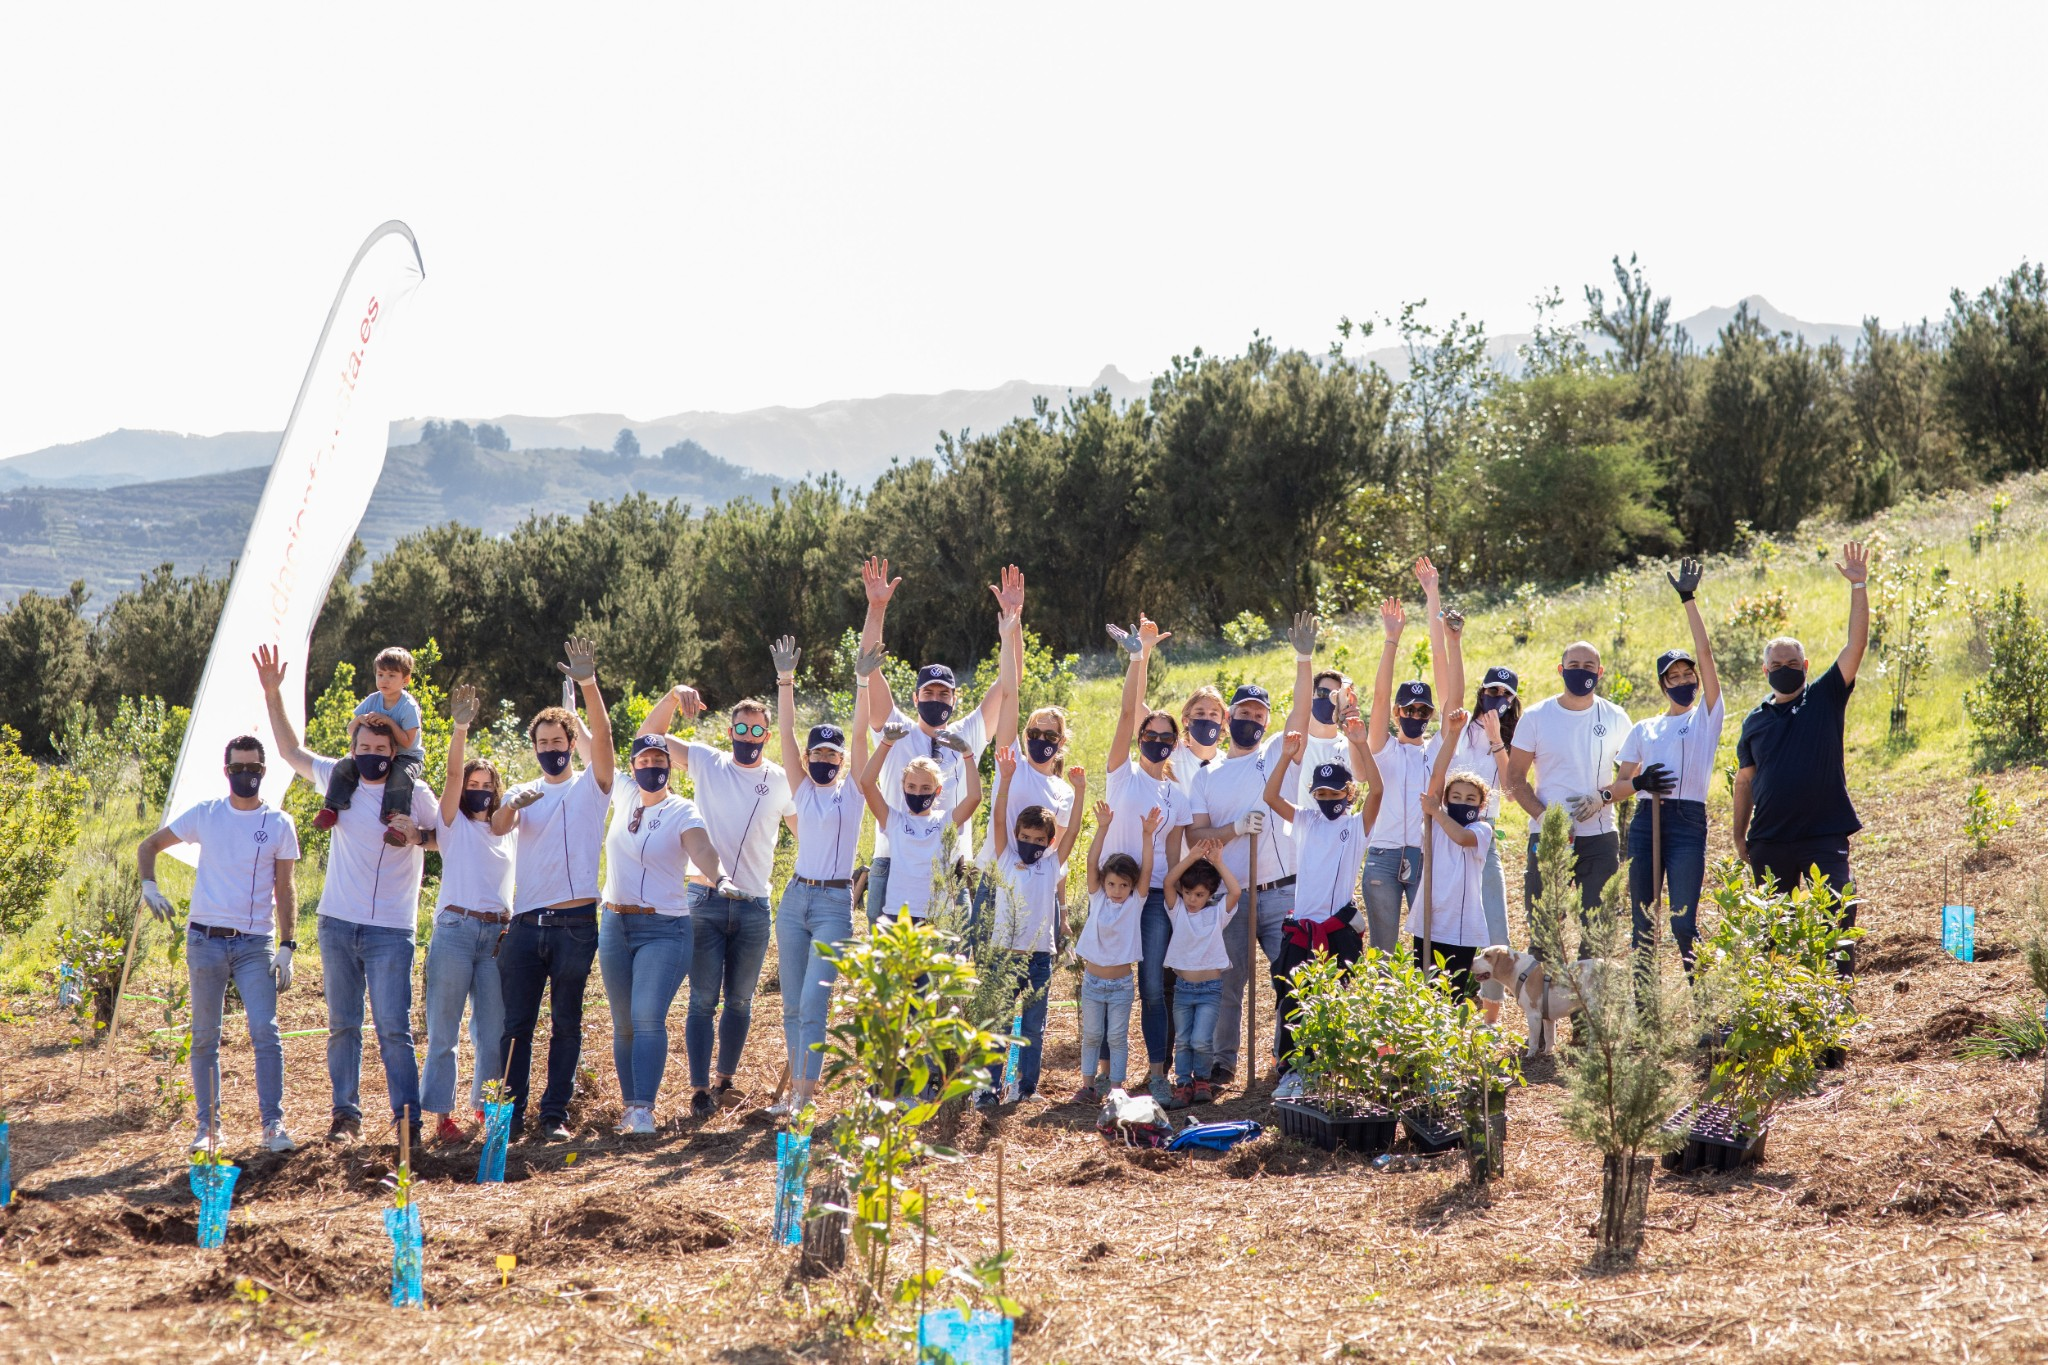 In collaboration with Foresta, Volkswagen Canarias is planting Canarian forests after the fire that hit Gran Canaria in 2019. With a total of 2,000 trees, the brand has contributed to reforesting laurel forests in the Canary Islands. Domingo Alonso Group, importer of the brand in the Canary Islands, has always shown its concern for the preservation of the environment and goes one step further with the donation of a chipping machine to help in the daily work of the Foresta Foundation and in prevention tasks.